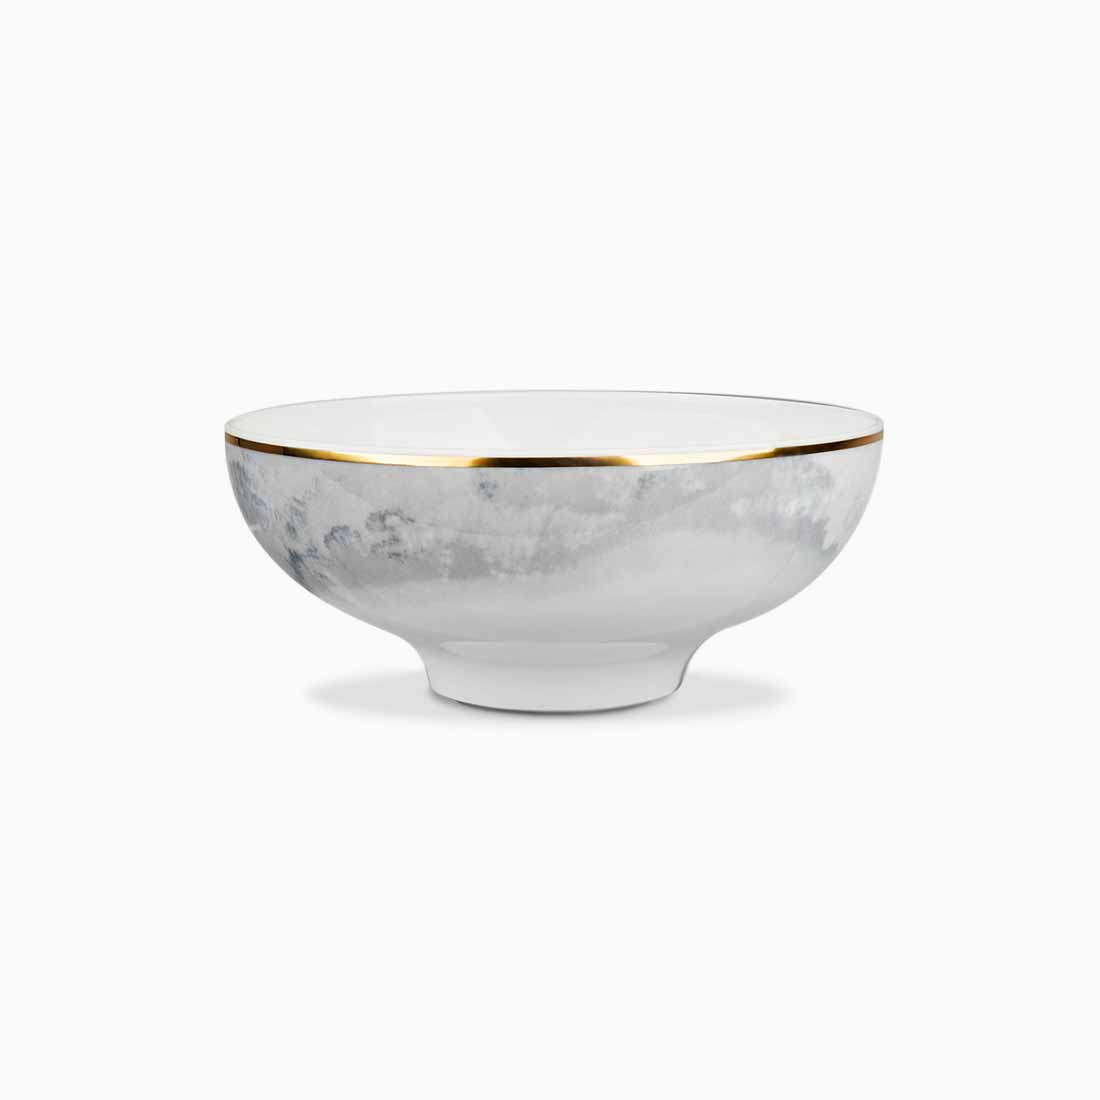 Pomona Bowl Grey Tempest with gold line 14 cm by Bodo Sperlein